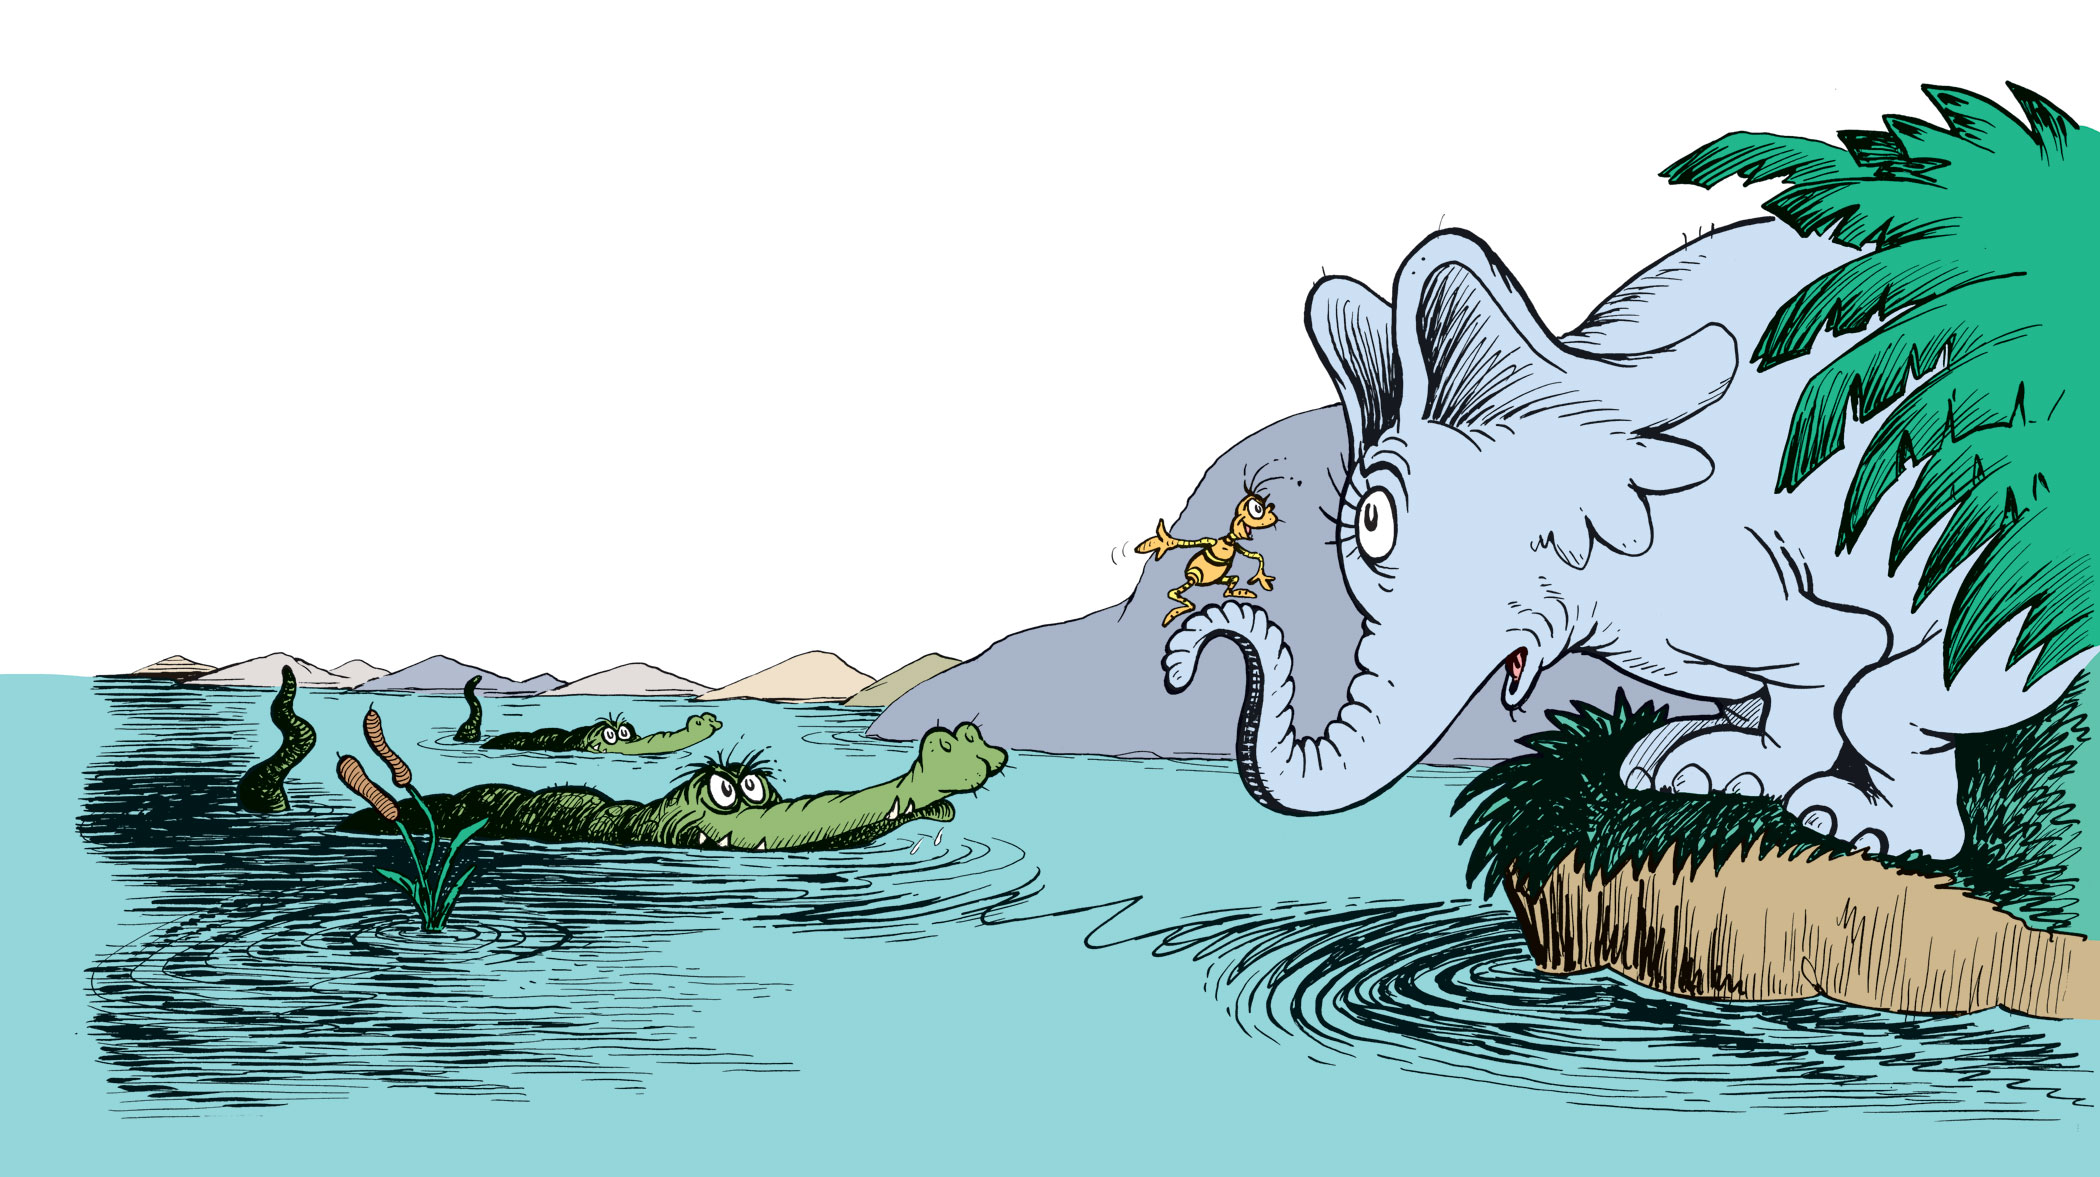 Horton and the Kwuggerbug in an illustration from Horton and the Kwuggerbug and More Lost Stories by Dr. Seuss